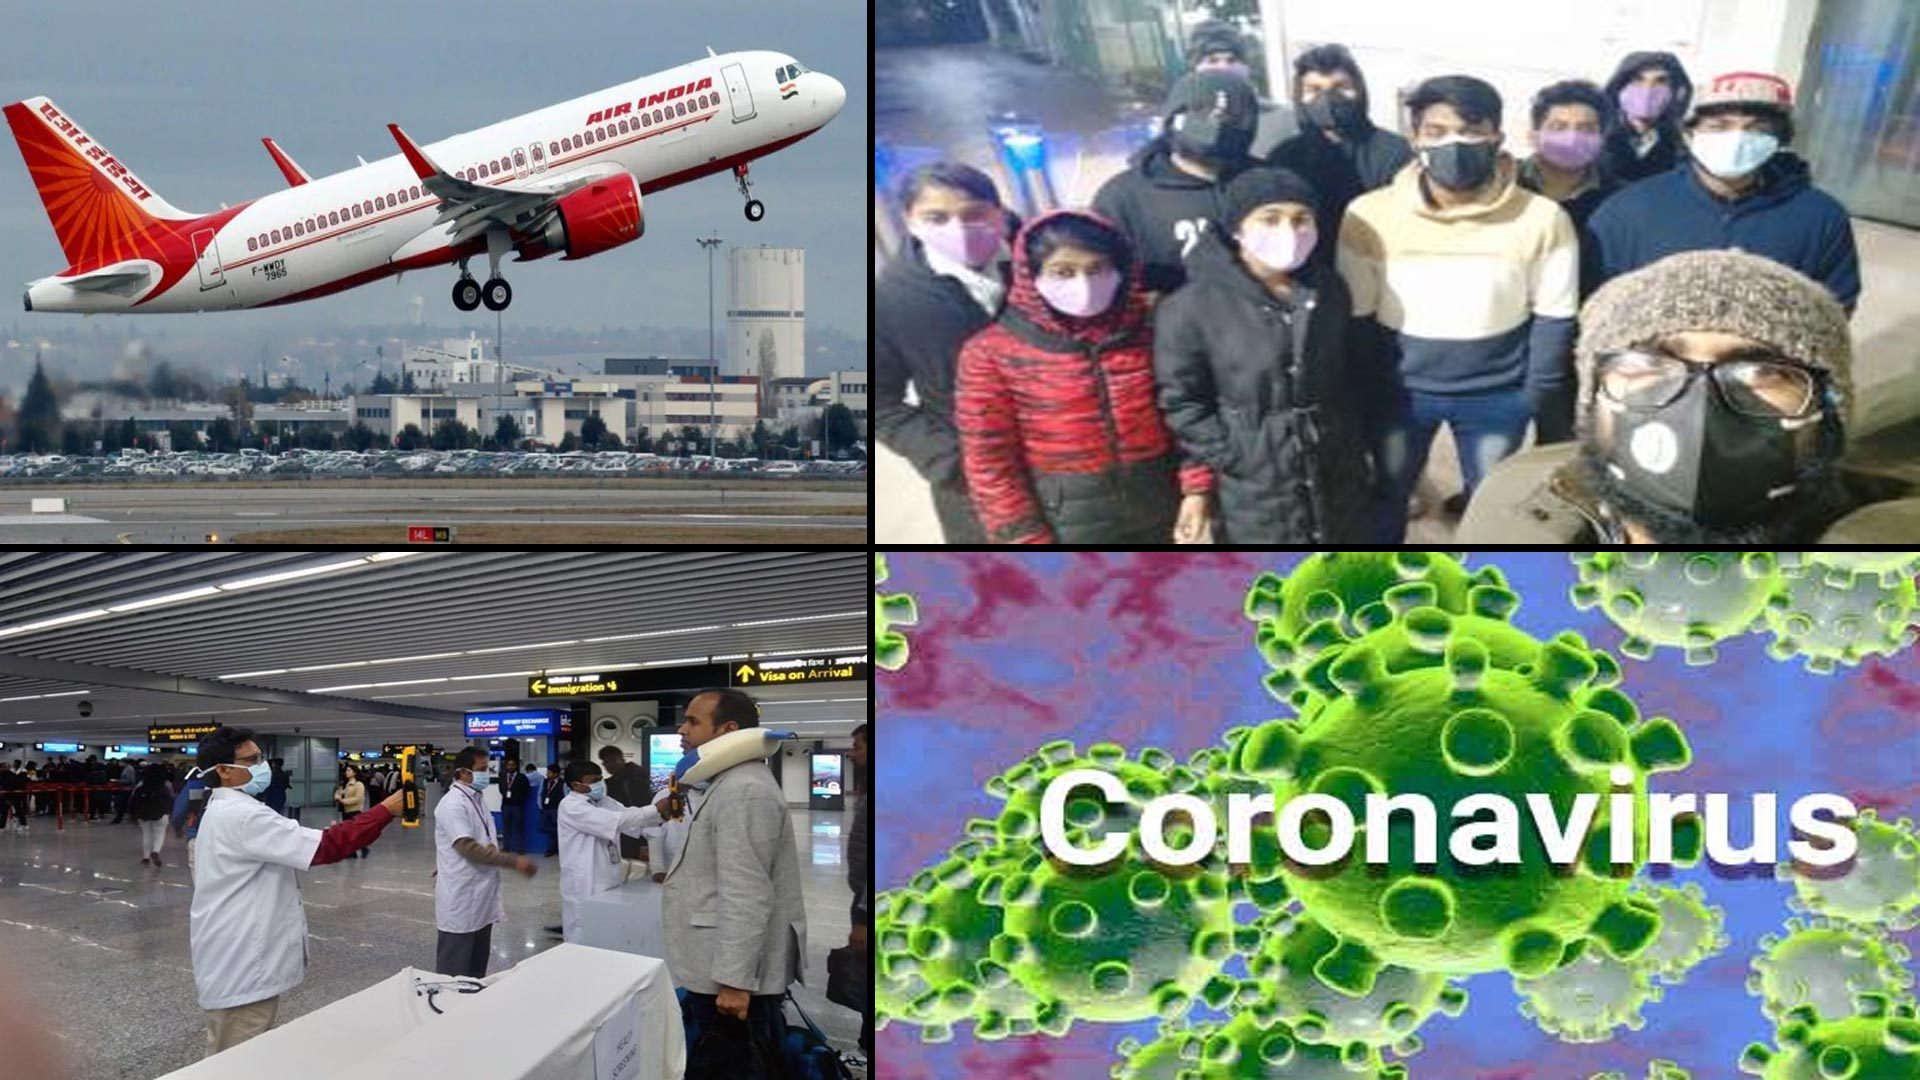 Coronavirus : Air India Special Flight To Bring Back Indians From China's Wuhan